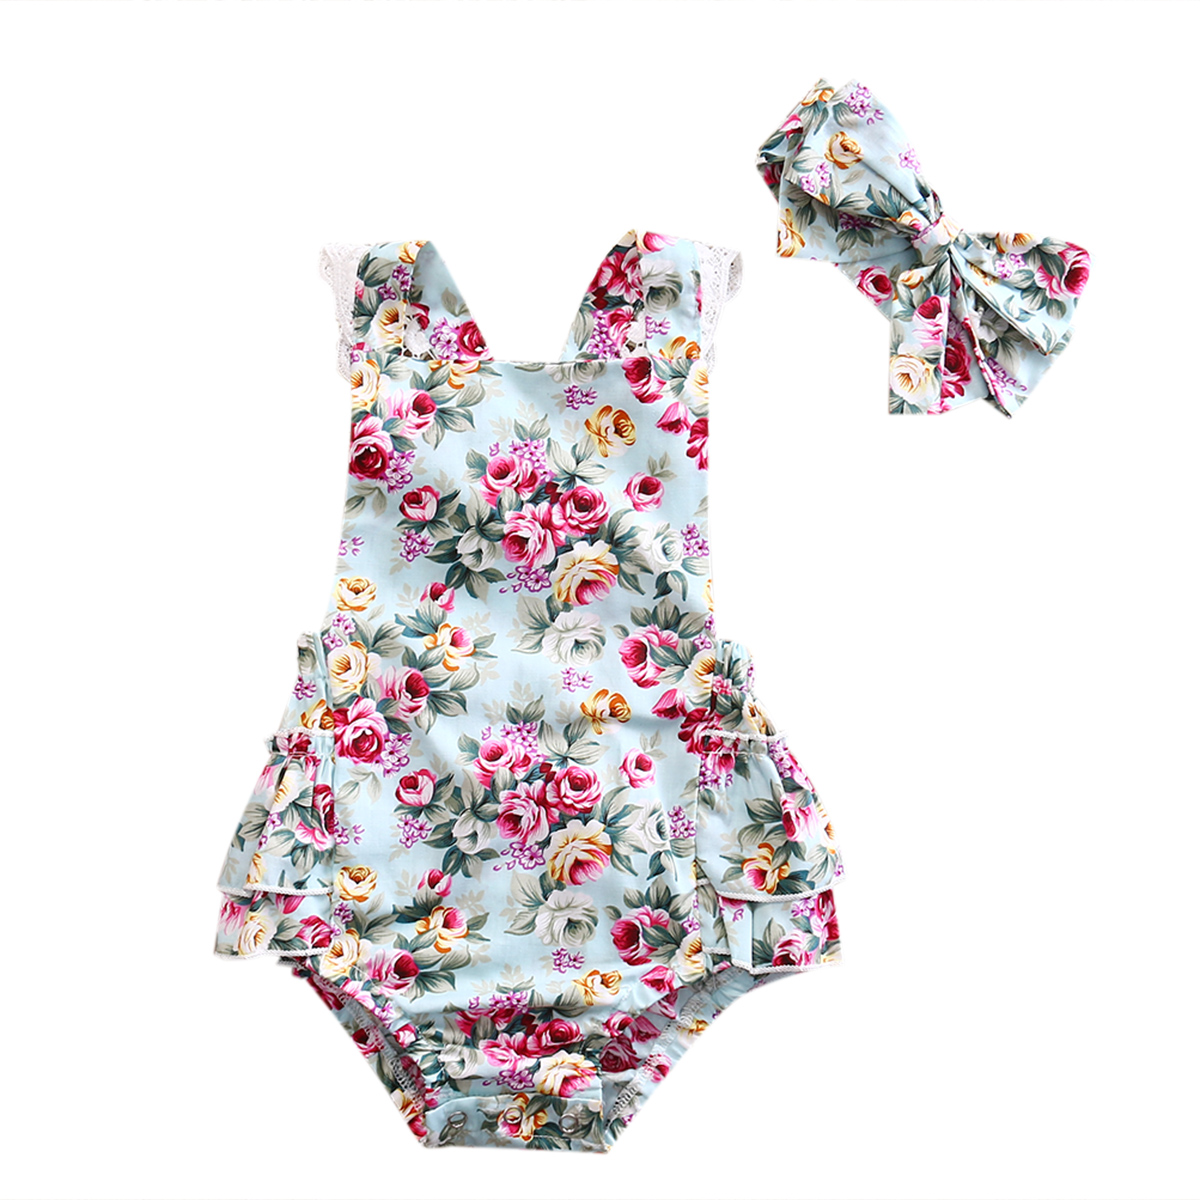 Girls Summer Clothes Newborn Kids Baby Girls Rompers Floral Lace Sleeve Jumpsuit Romper Playsuit Outfits Clothes